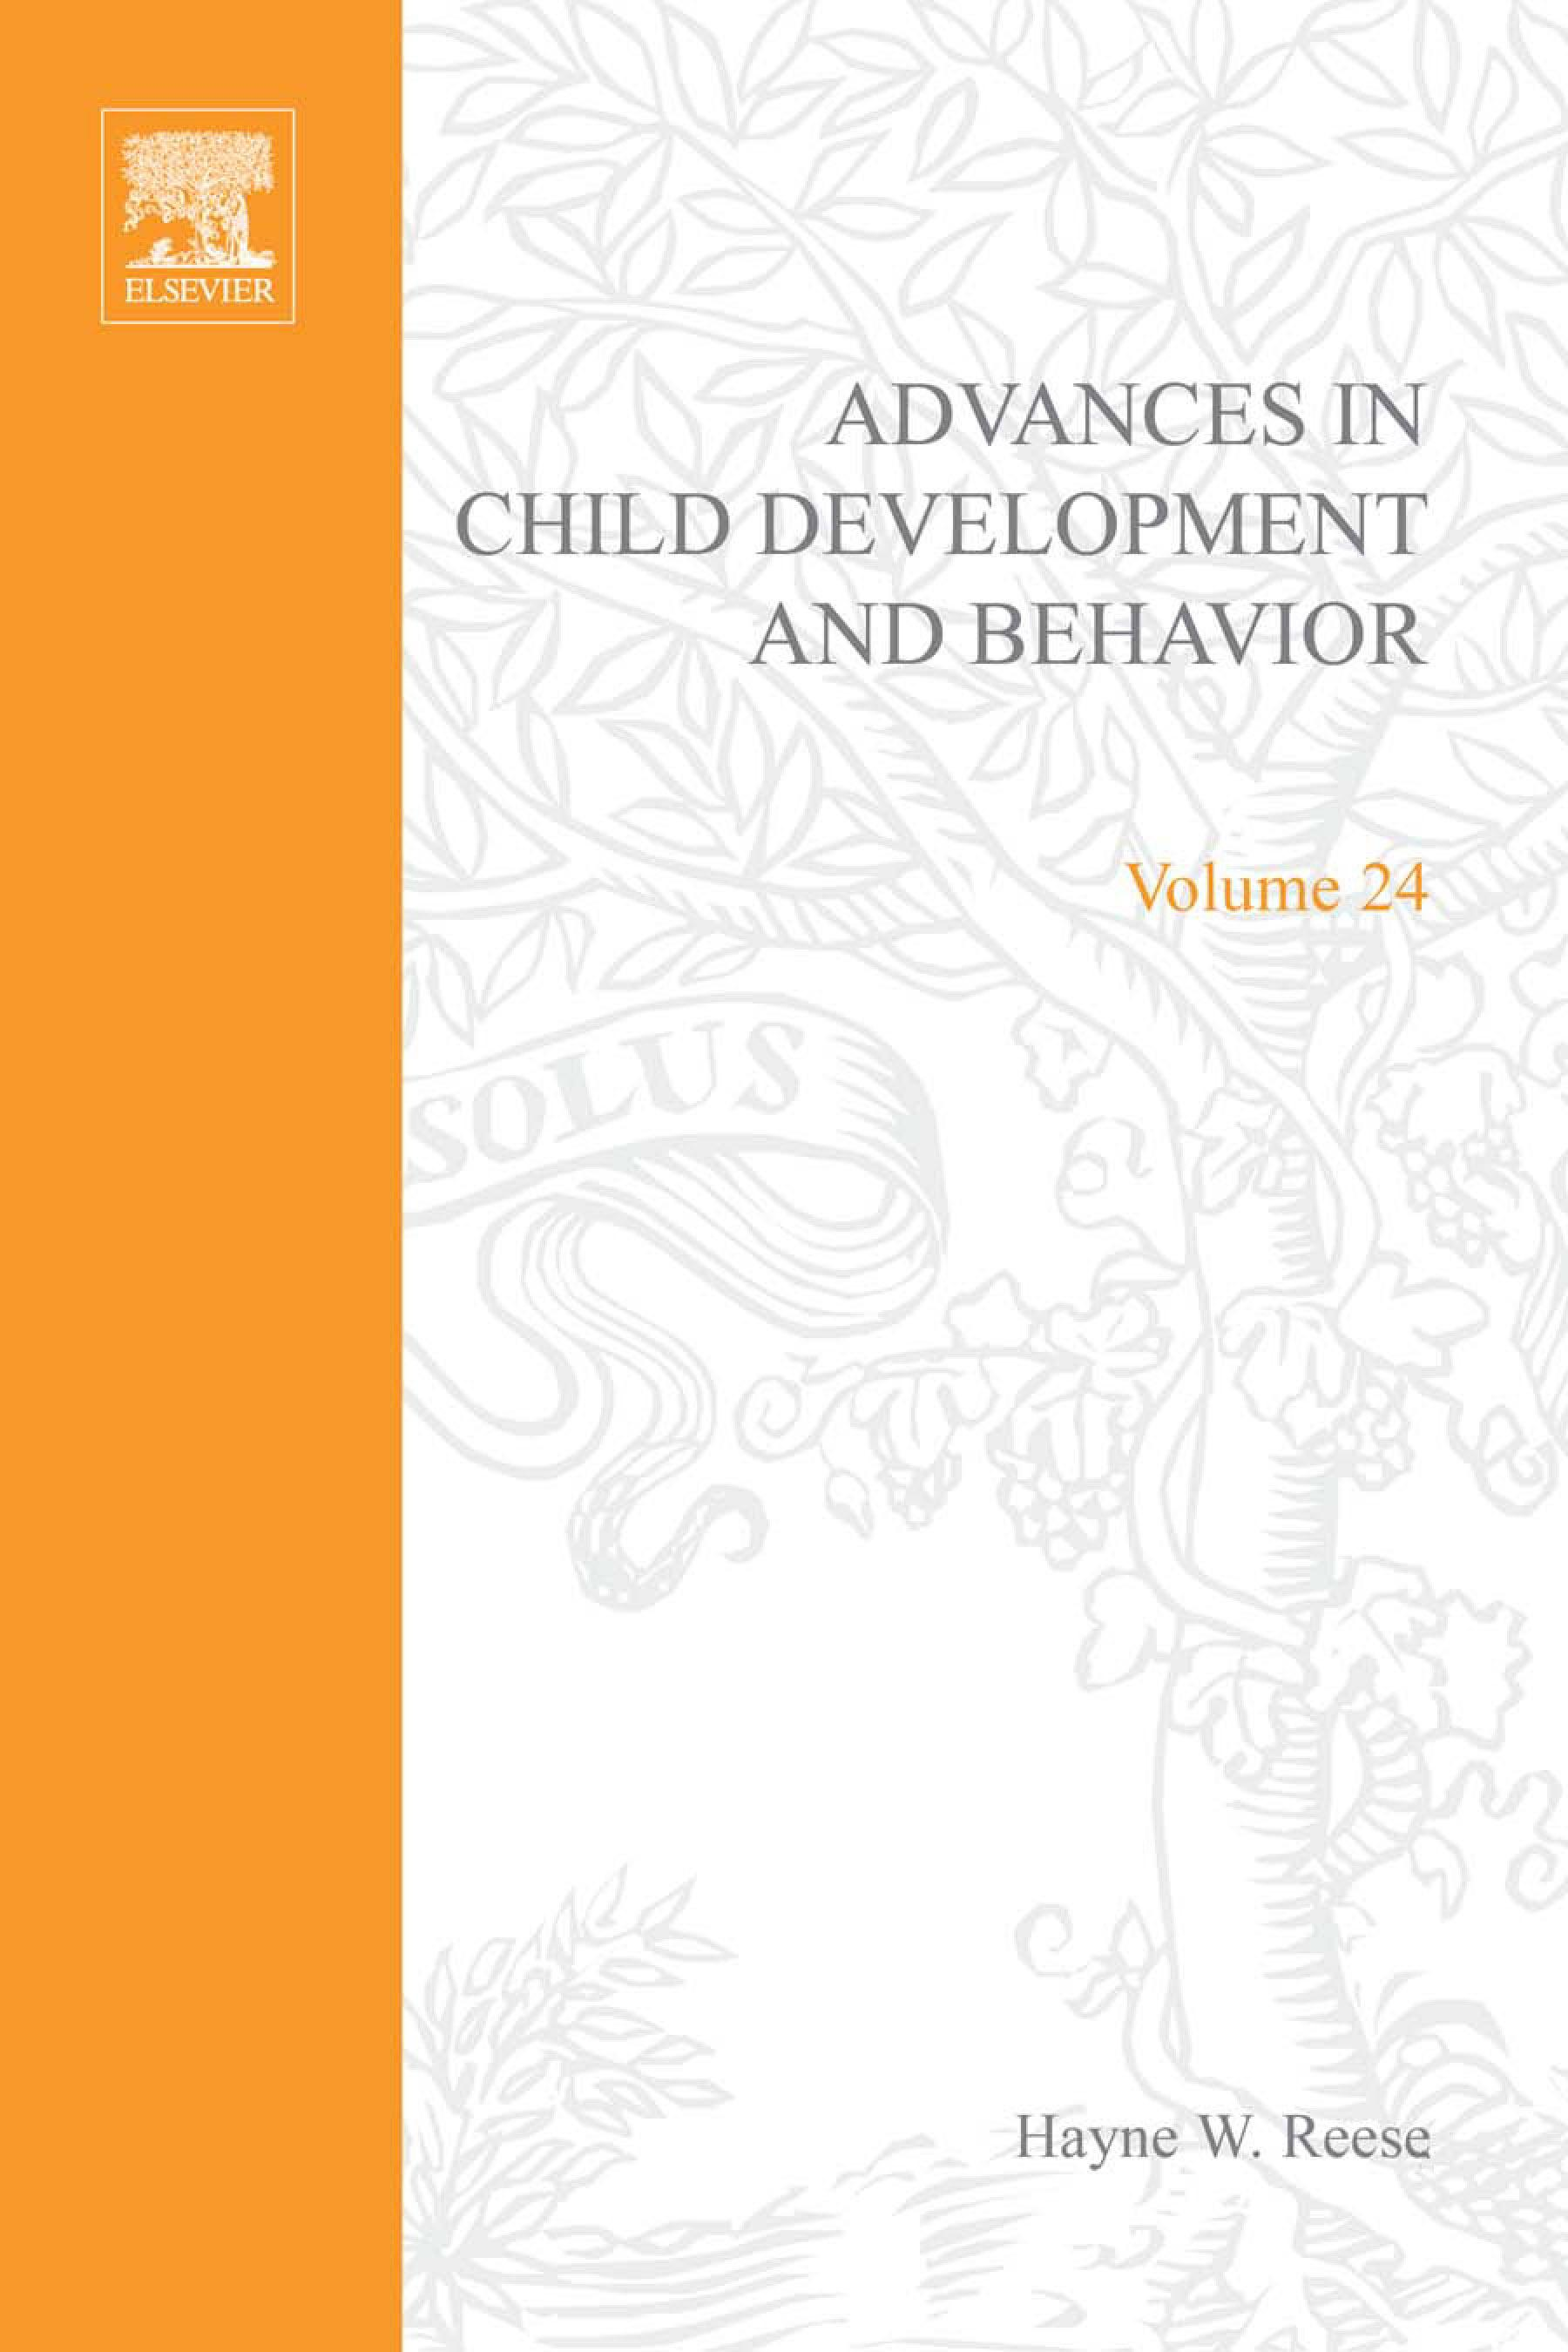 Advances in Child Development and Behavior: Volume 24